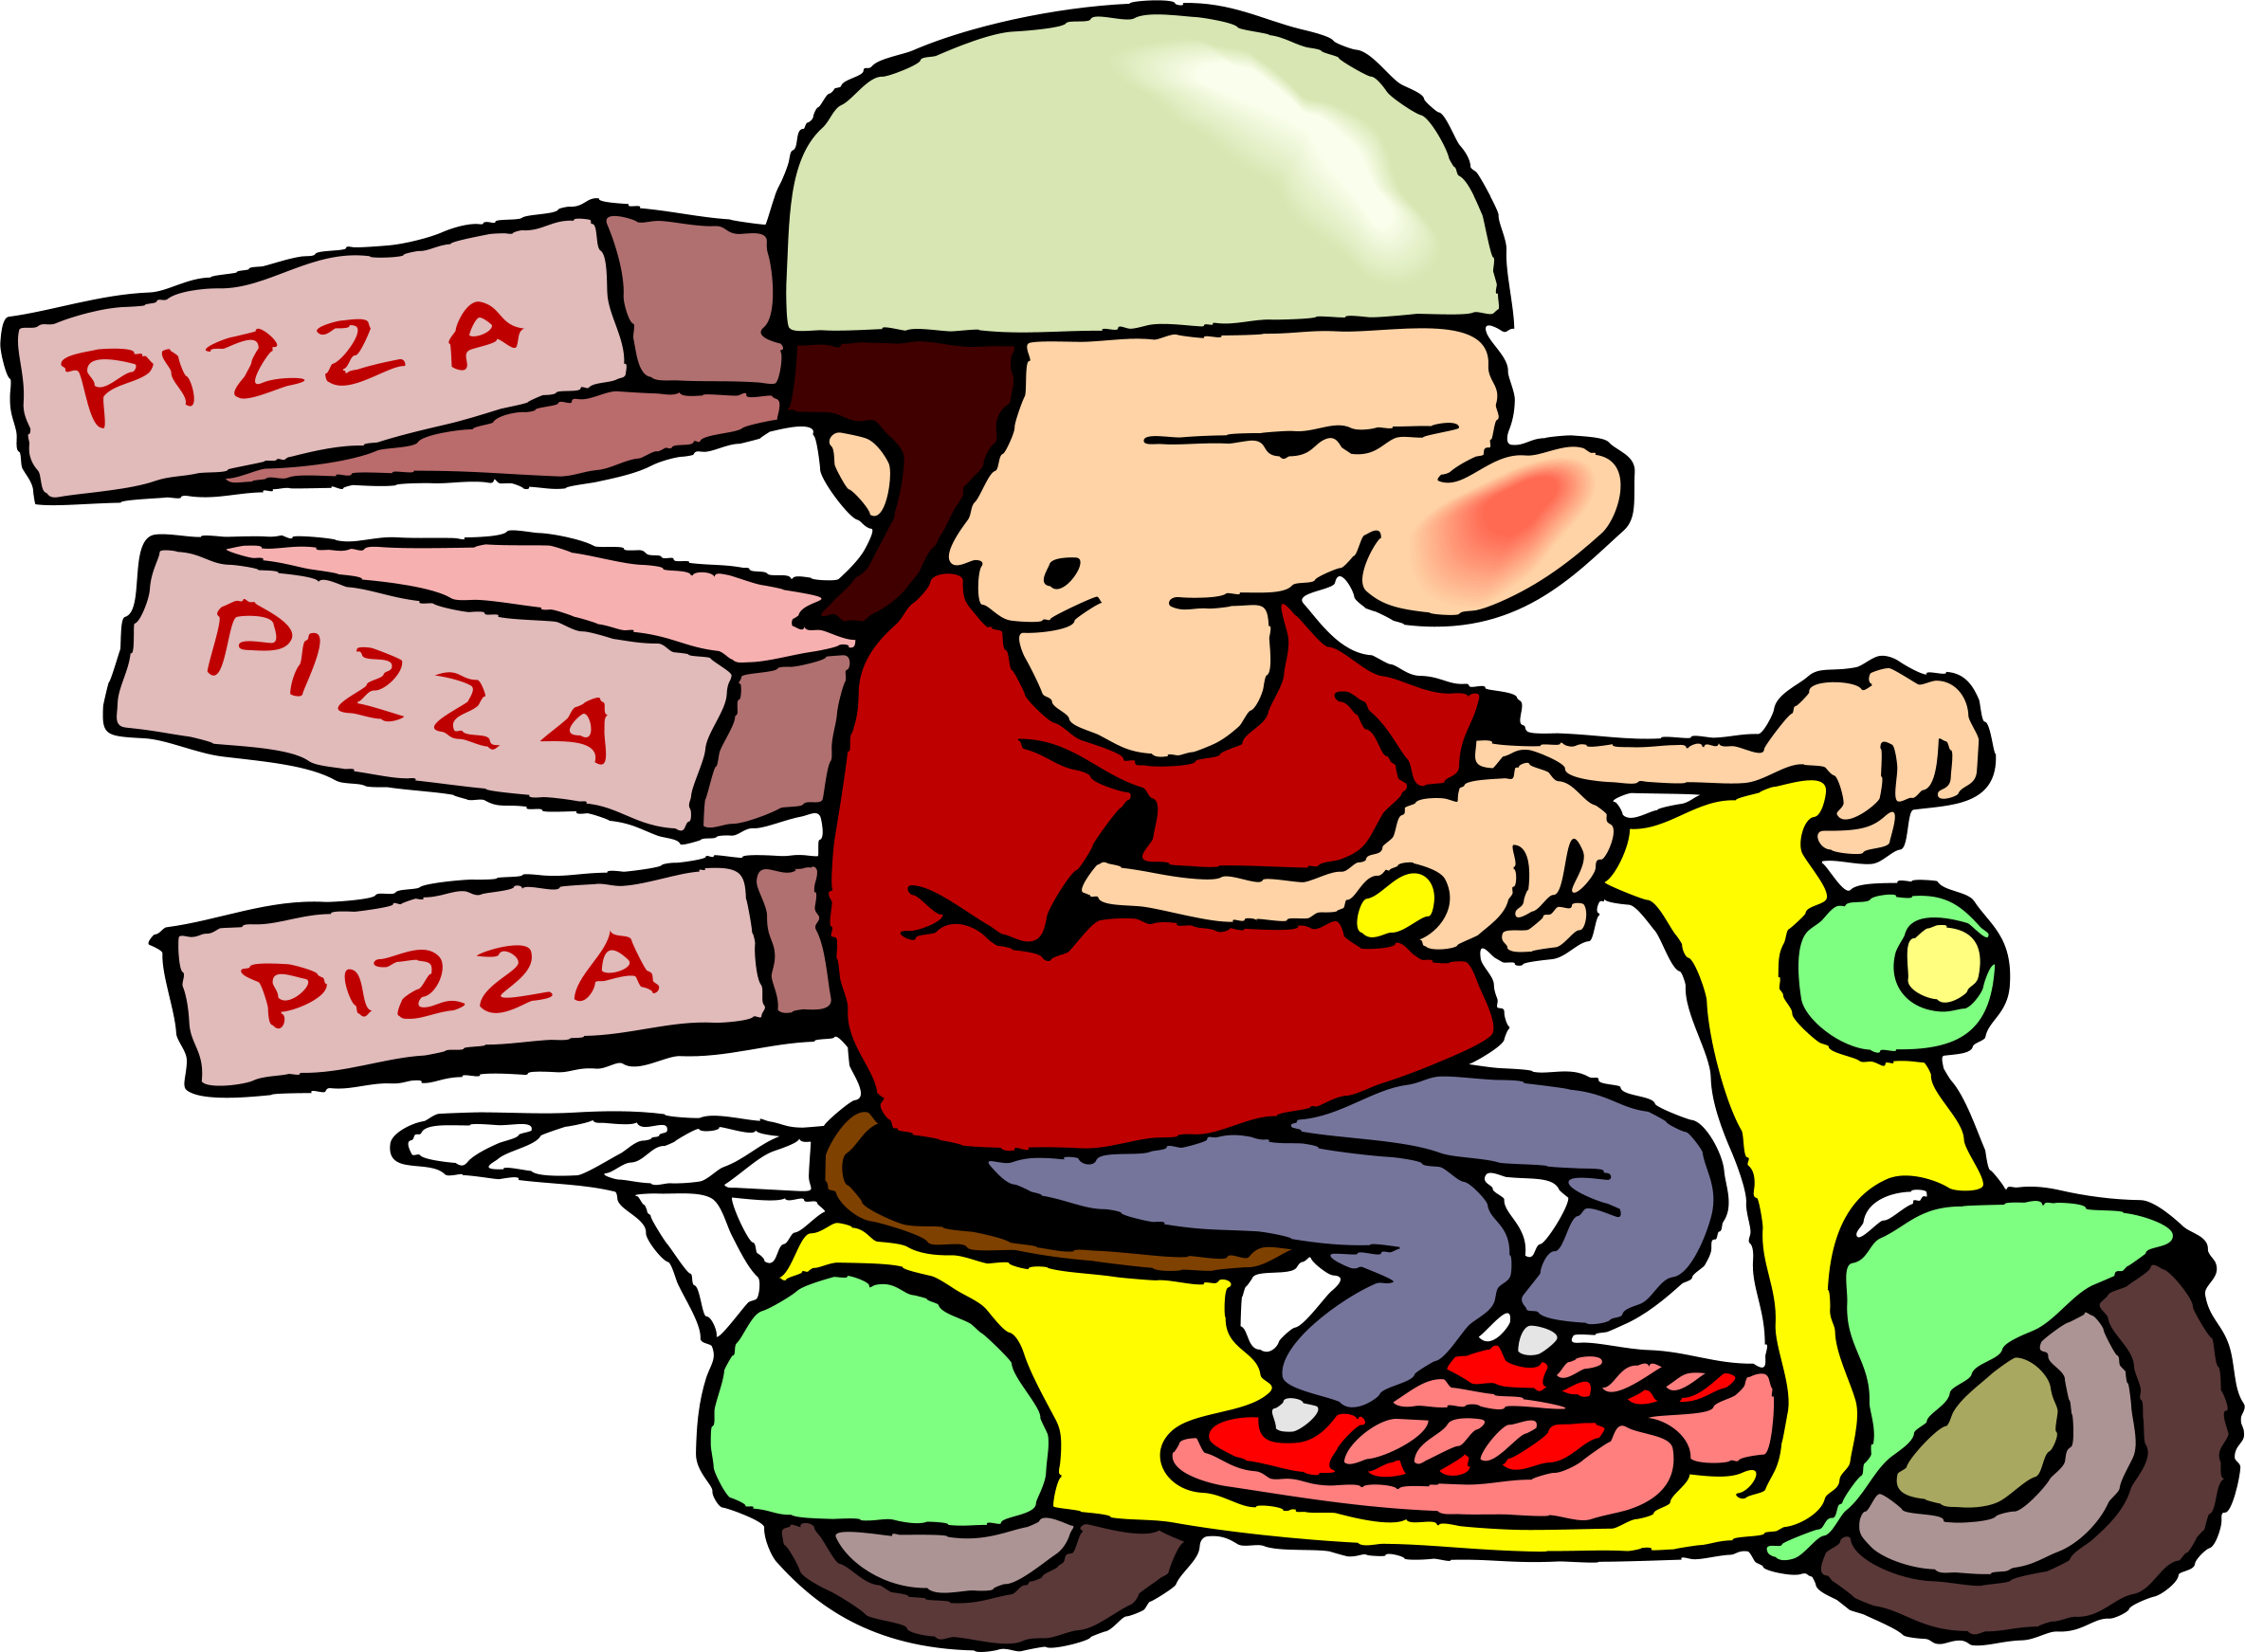 Man group free cliparthut. Person clipart pizza